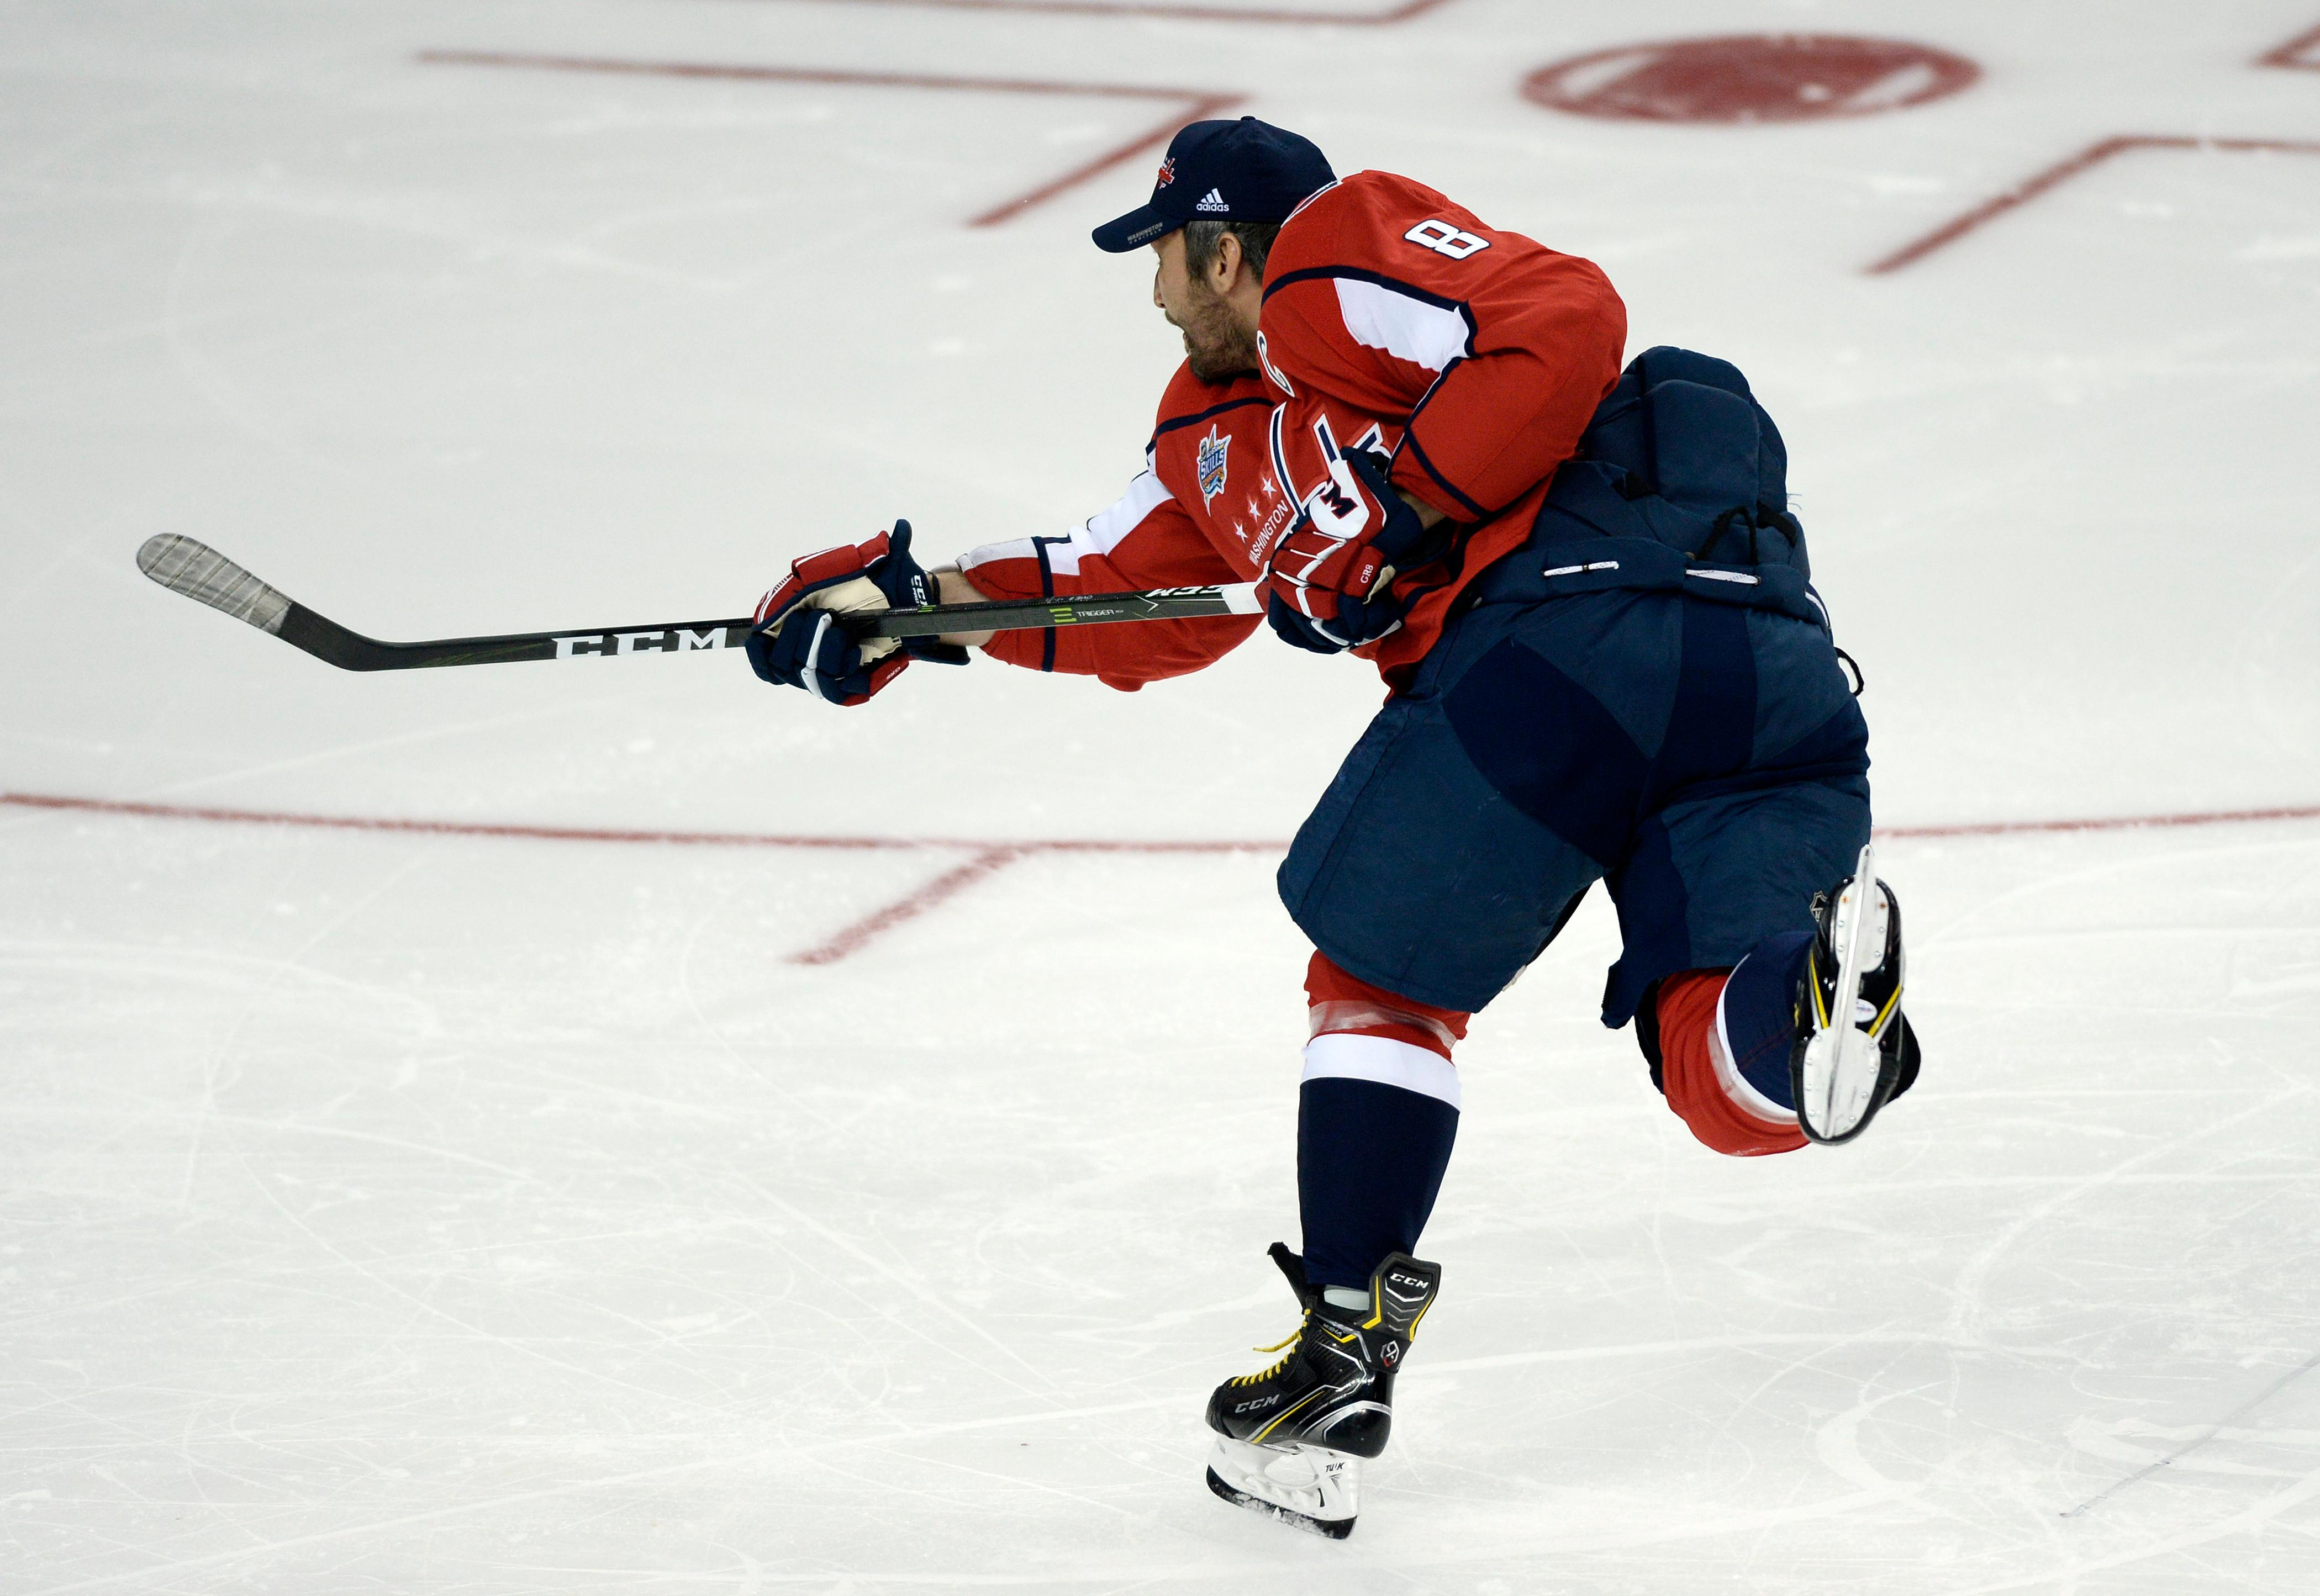 Washington Capitals forward Alexander Ovechkin shoots during the hardest-shot drill during the Skills Competition, part of the NHL All-Star Game weekend, Saturday, Jan. 27, 2018, in Tampa, Fla. Ovechkin won the contest. The game takes place Sunday afternoon. (AP Photo/Jason Behnken)